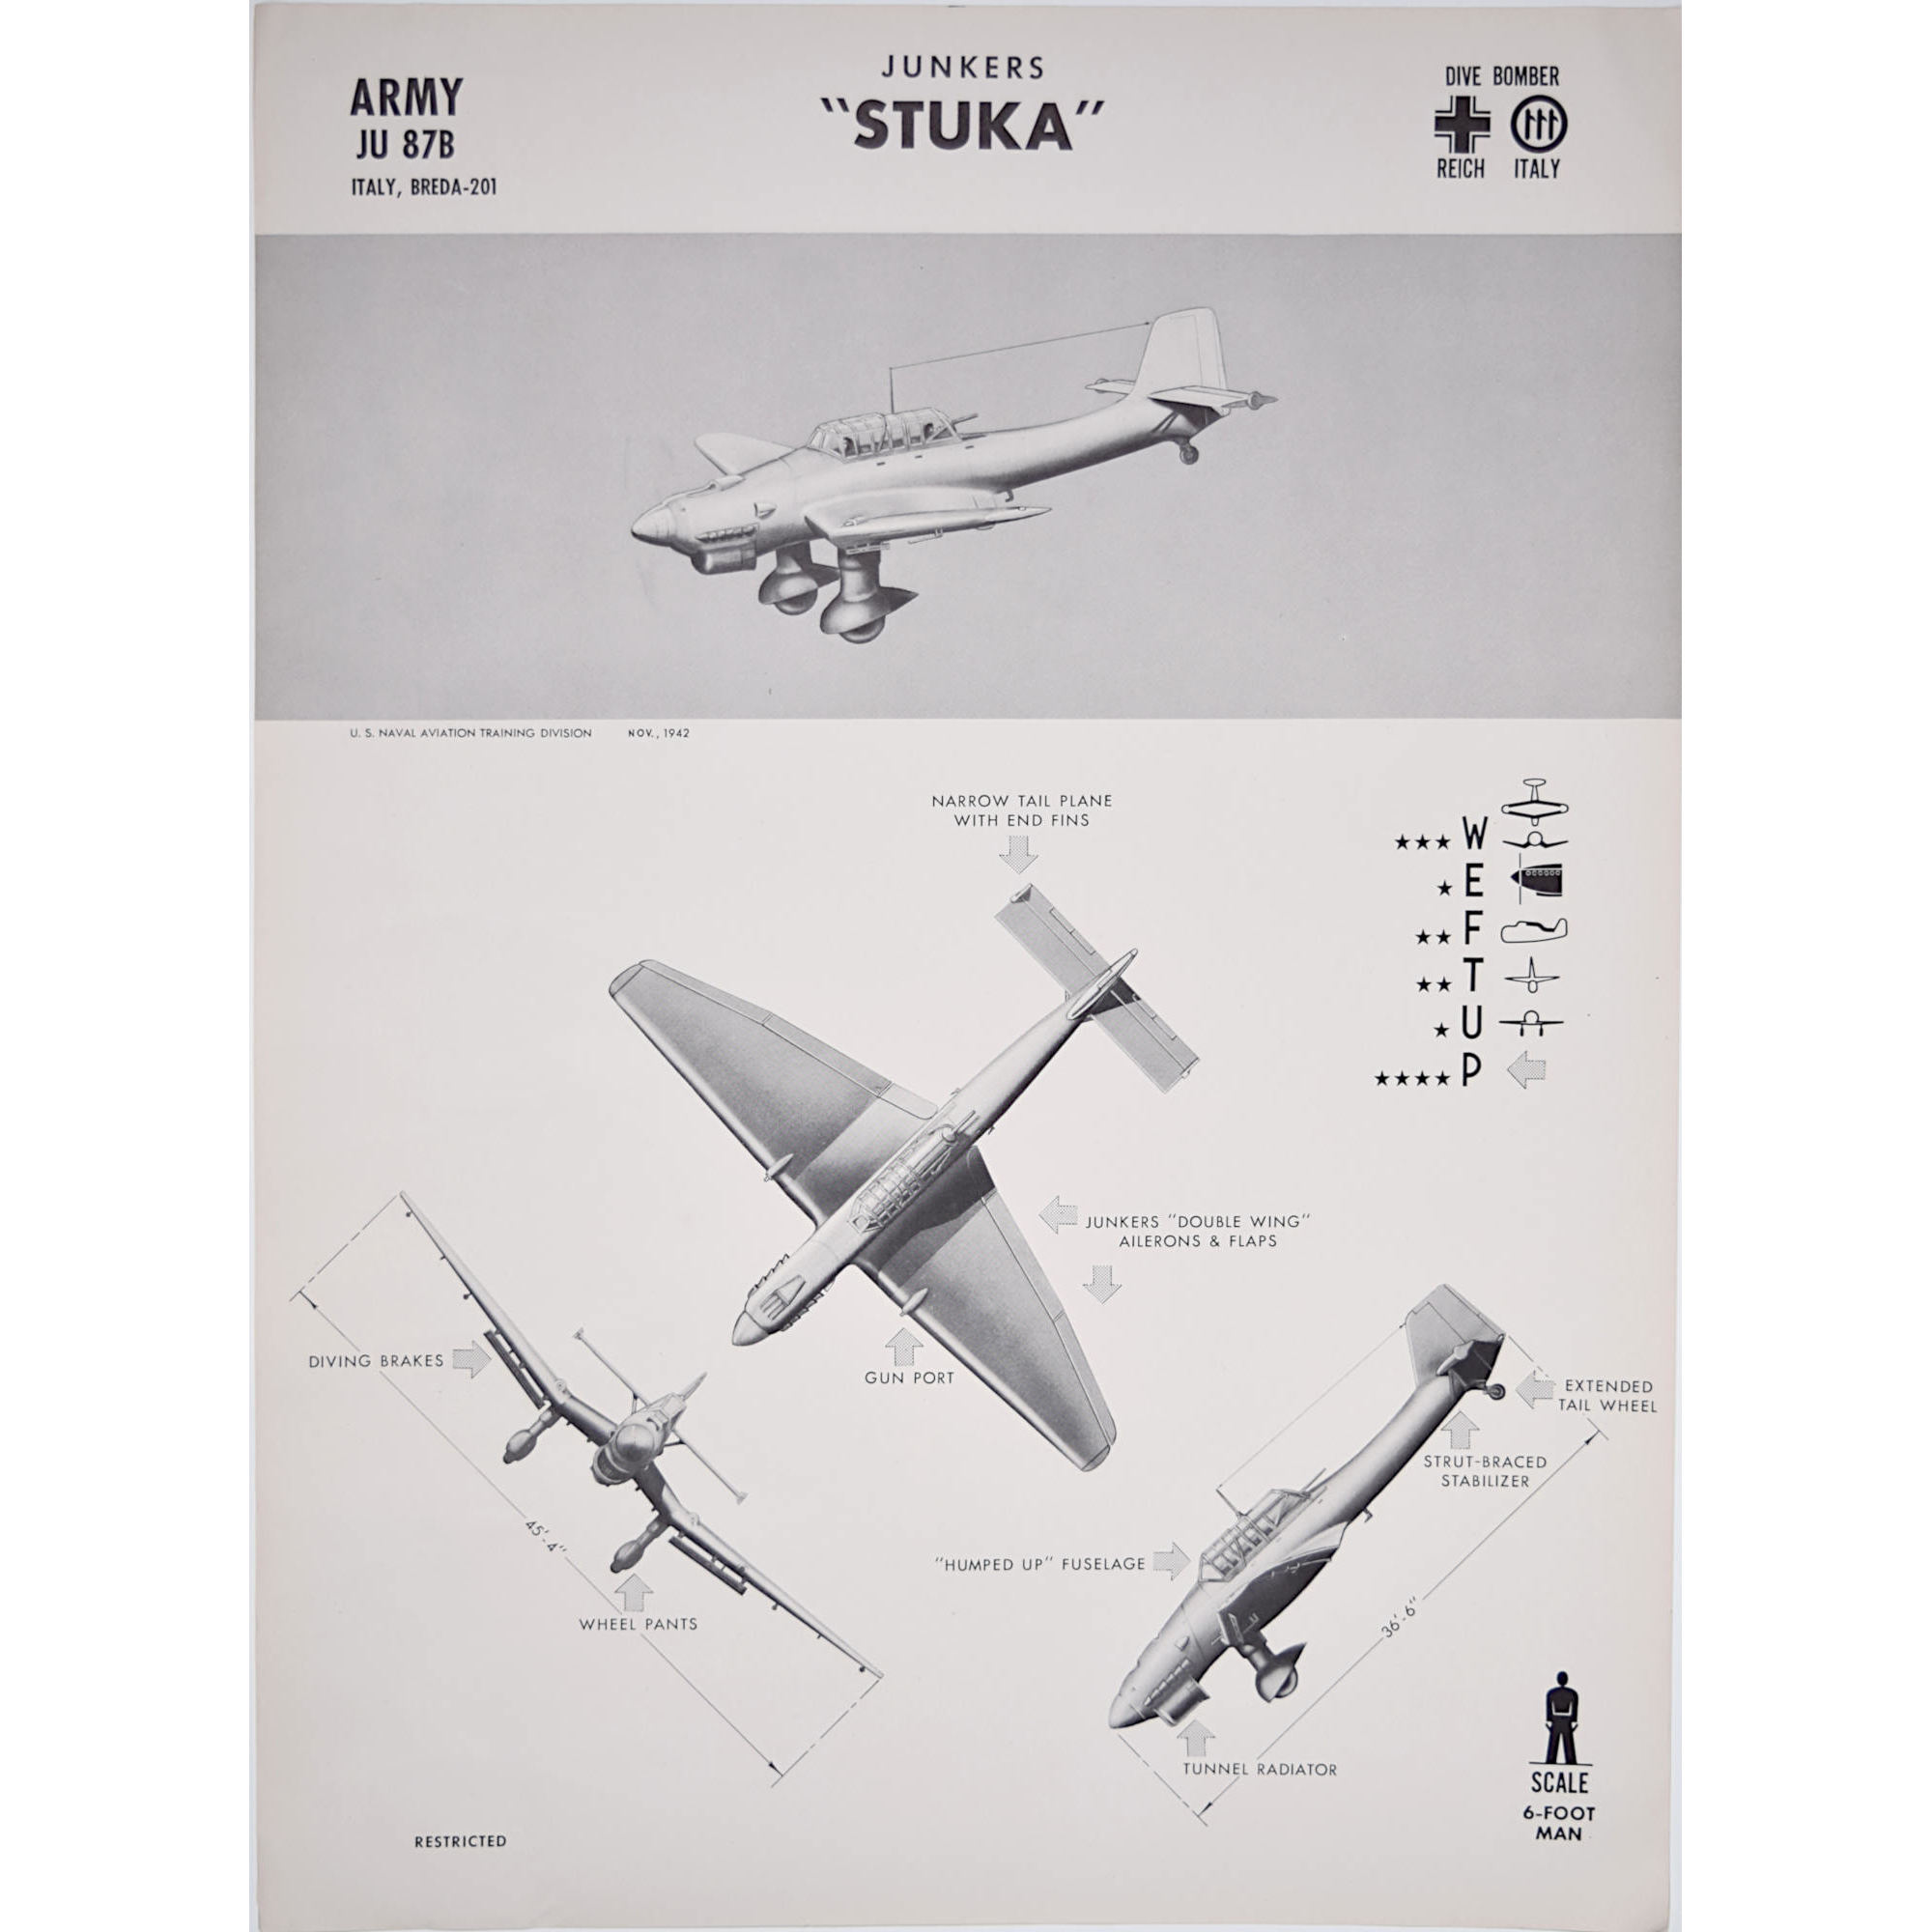 Junkers Stuka Dive Bomber WW2 original aircraft recognition poster